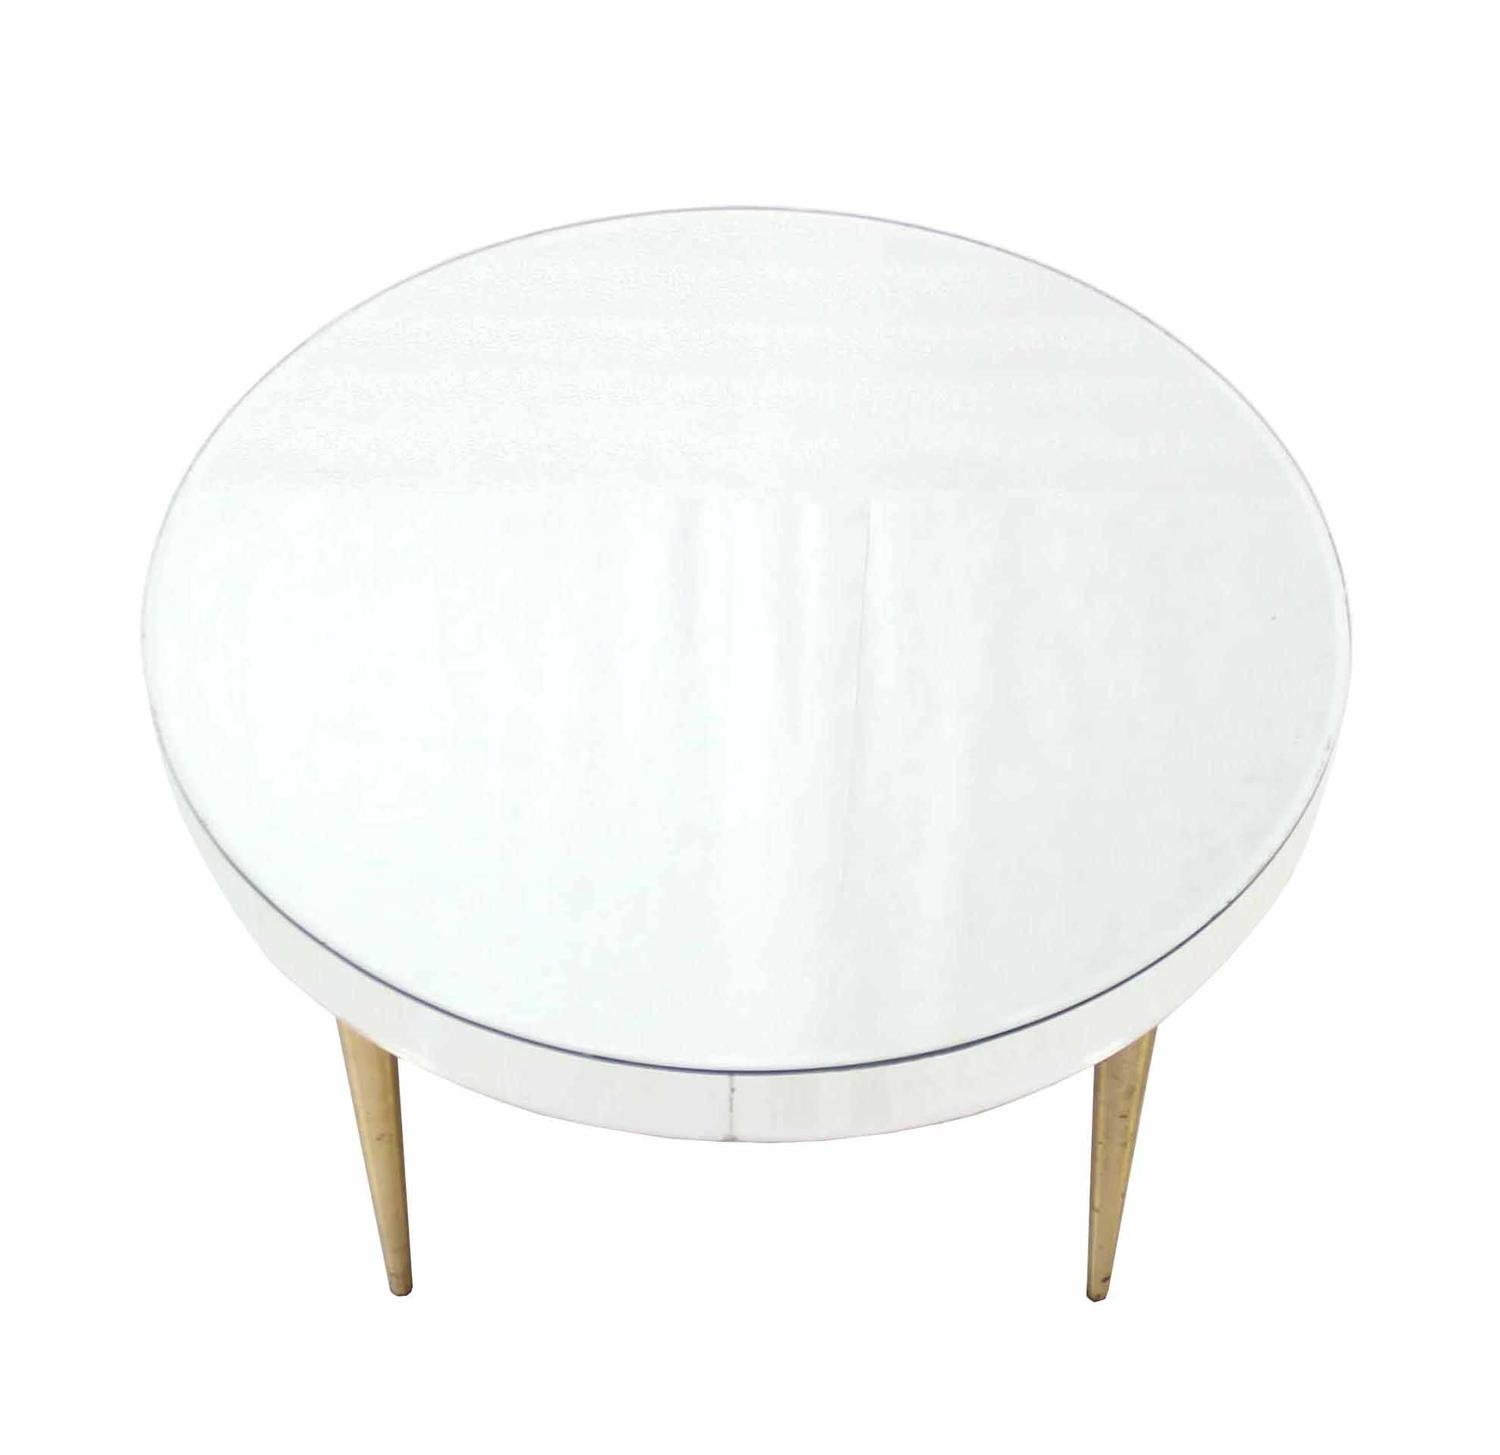 Mirrored Top Drum Shape Coffee Table For Sale At 1stdibs